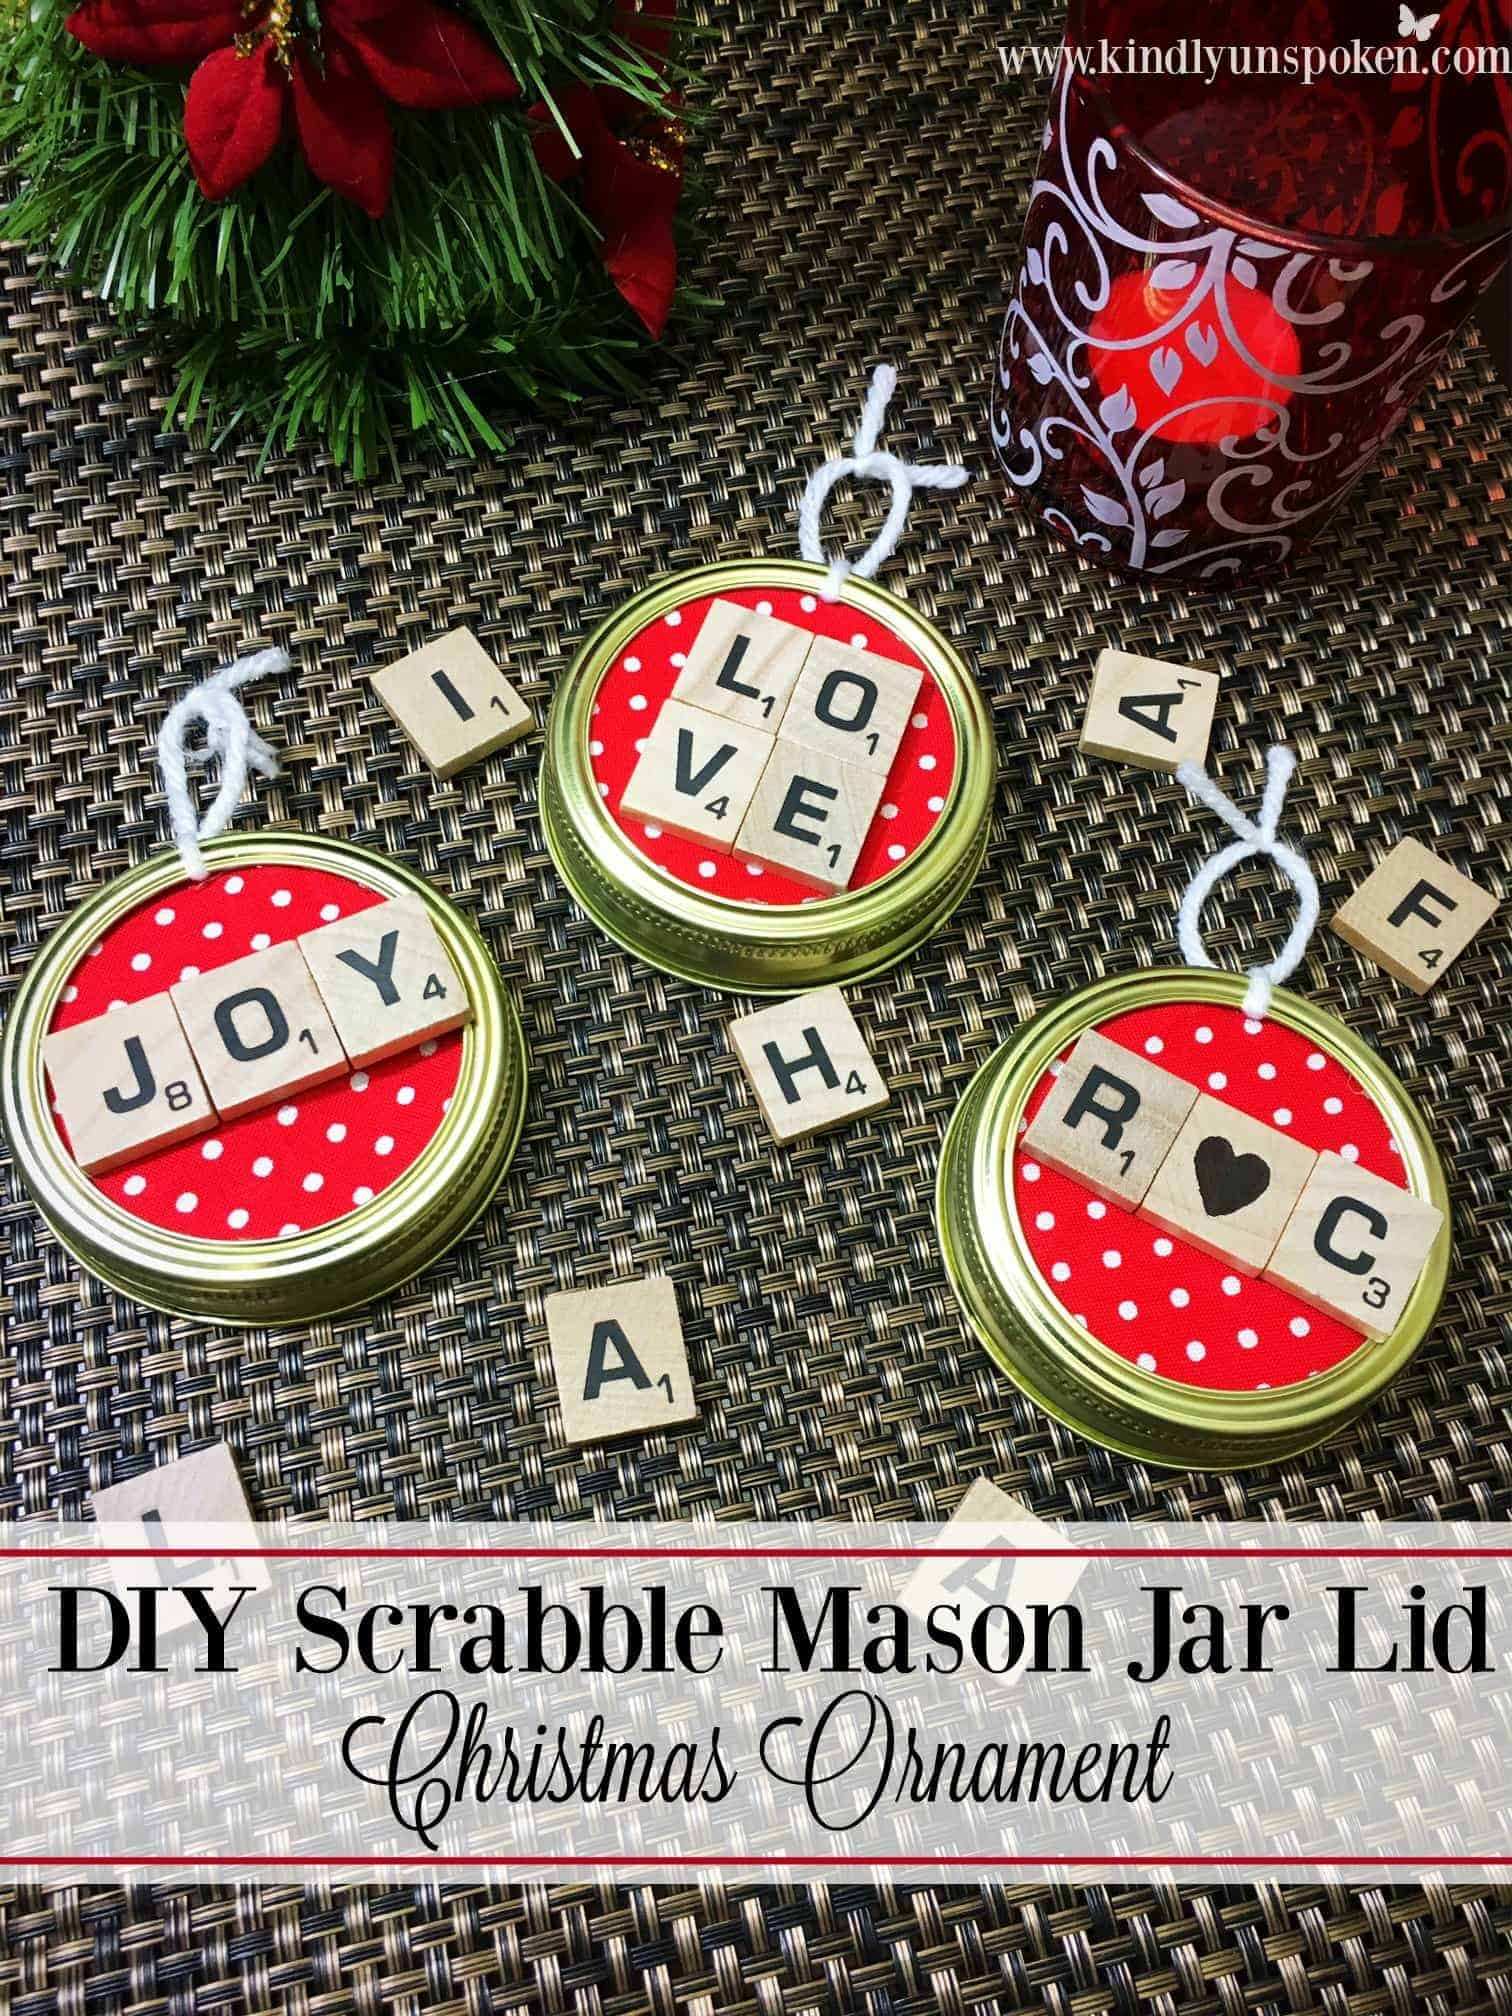 These DIY Christmas Mason Jar Lid Scrabble Ornaments are so cute and easy to make! Personalize them with holiday words or names to decorate the Christmas tree! #scrabbleornaments #christmasornaments #masonjarcrafts #scrabbletilecrafts #diychristmas